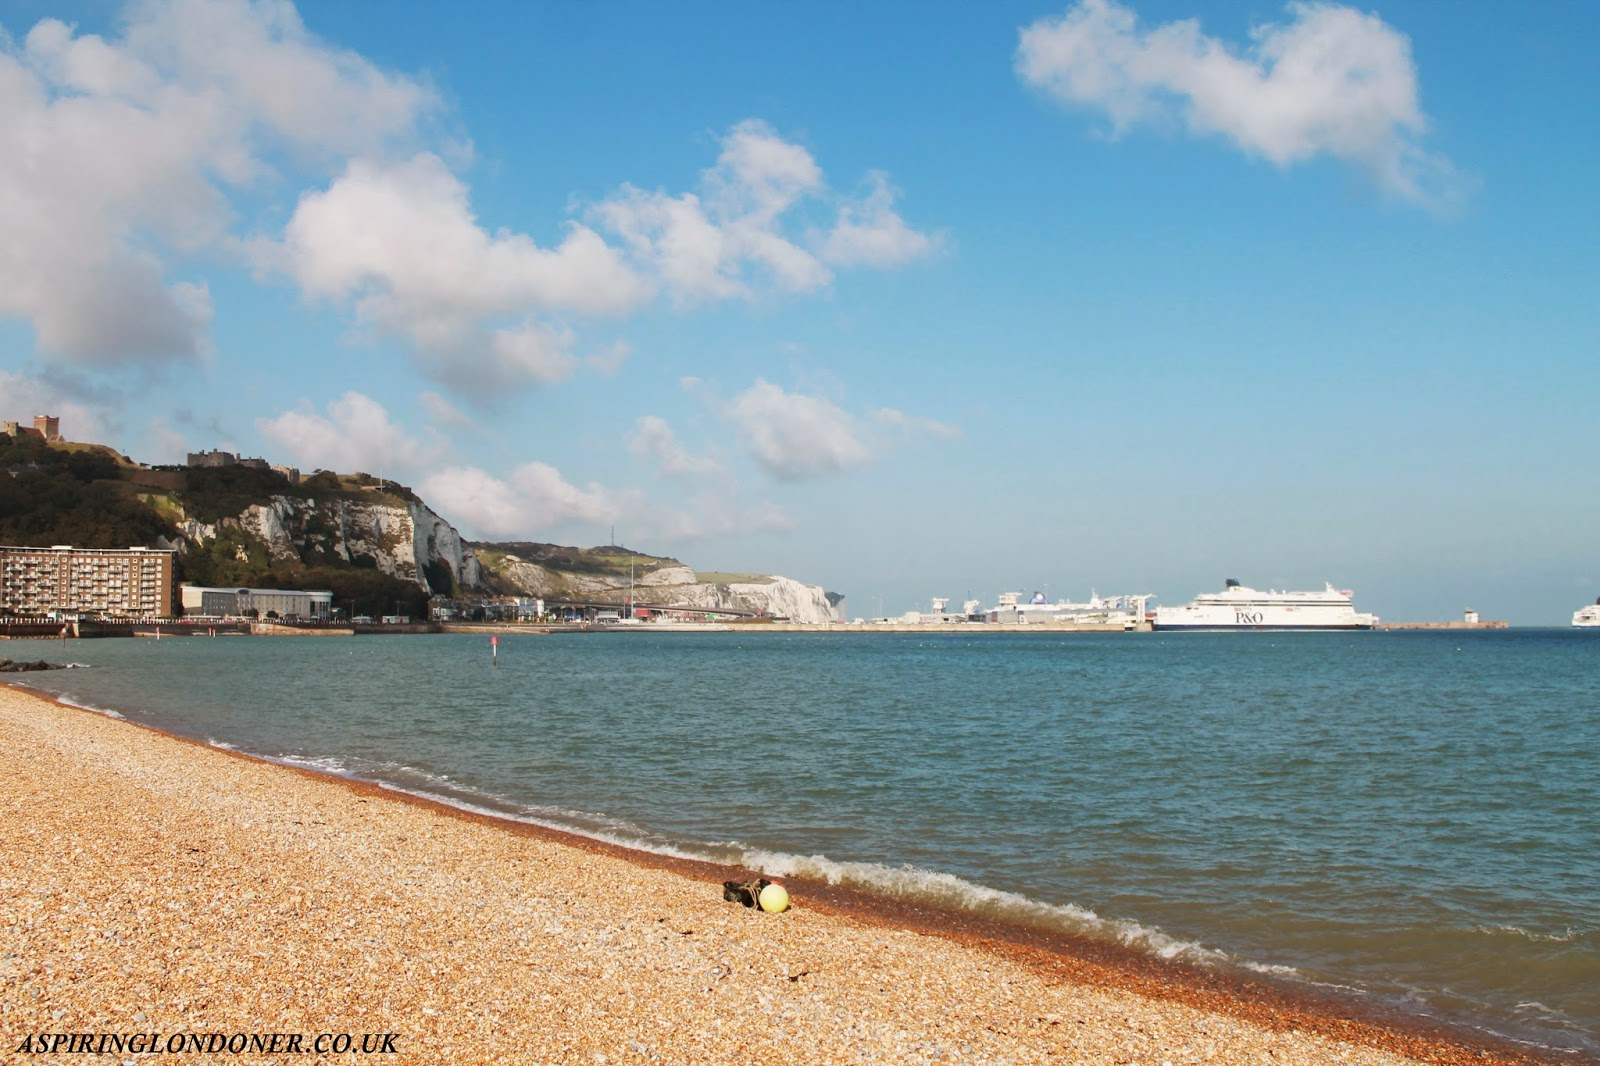 White Cliffs of Dover Artificial Beach - Aspiring Londoner